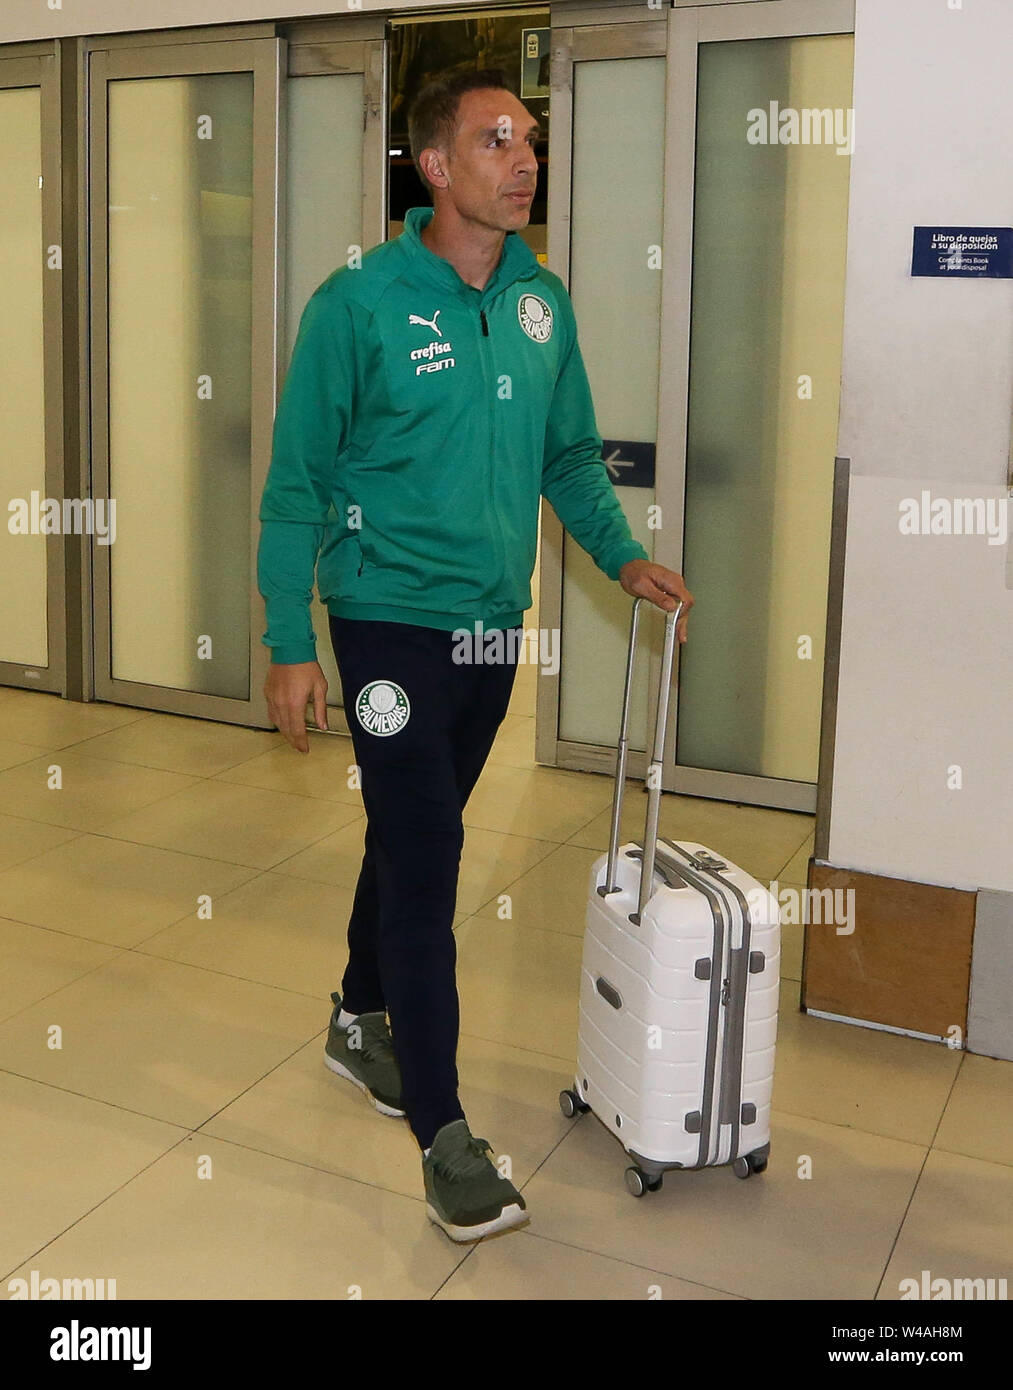 Buenos Aires, Argentina. 21st July, 2019. Goalkeeper Fernando Prass of SE Palmeiras during landing at Buenos Aires International Airport. Credit: Cesar Greco/FotoArena/Alamy Live News - Stock Image